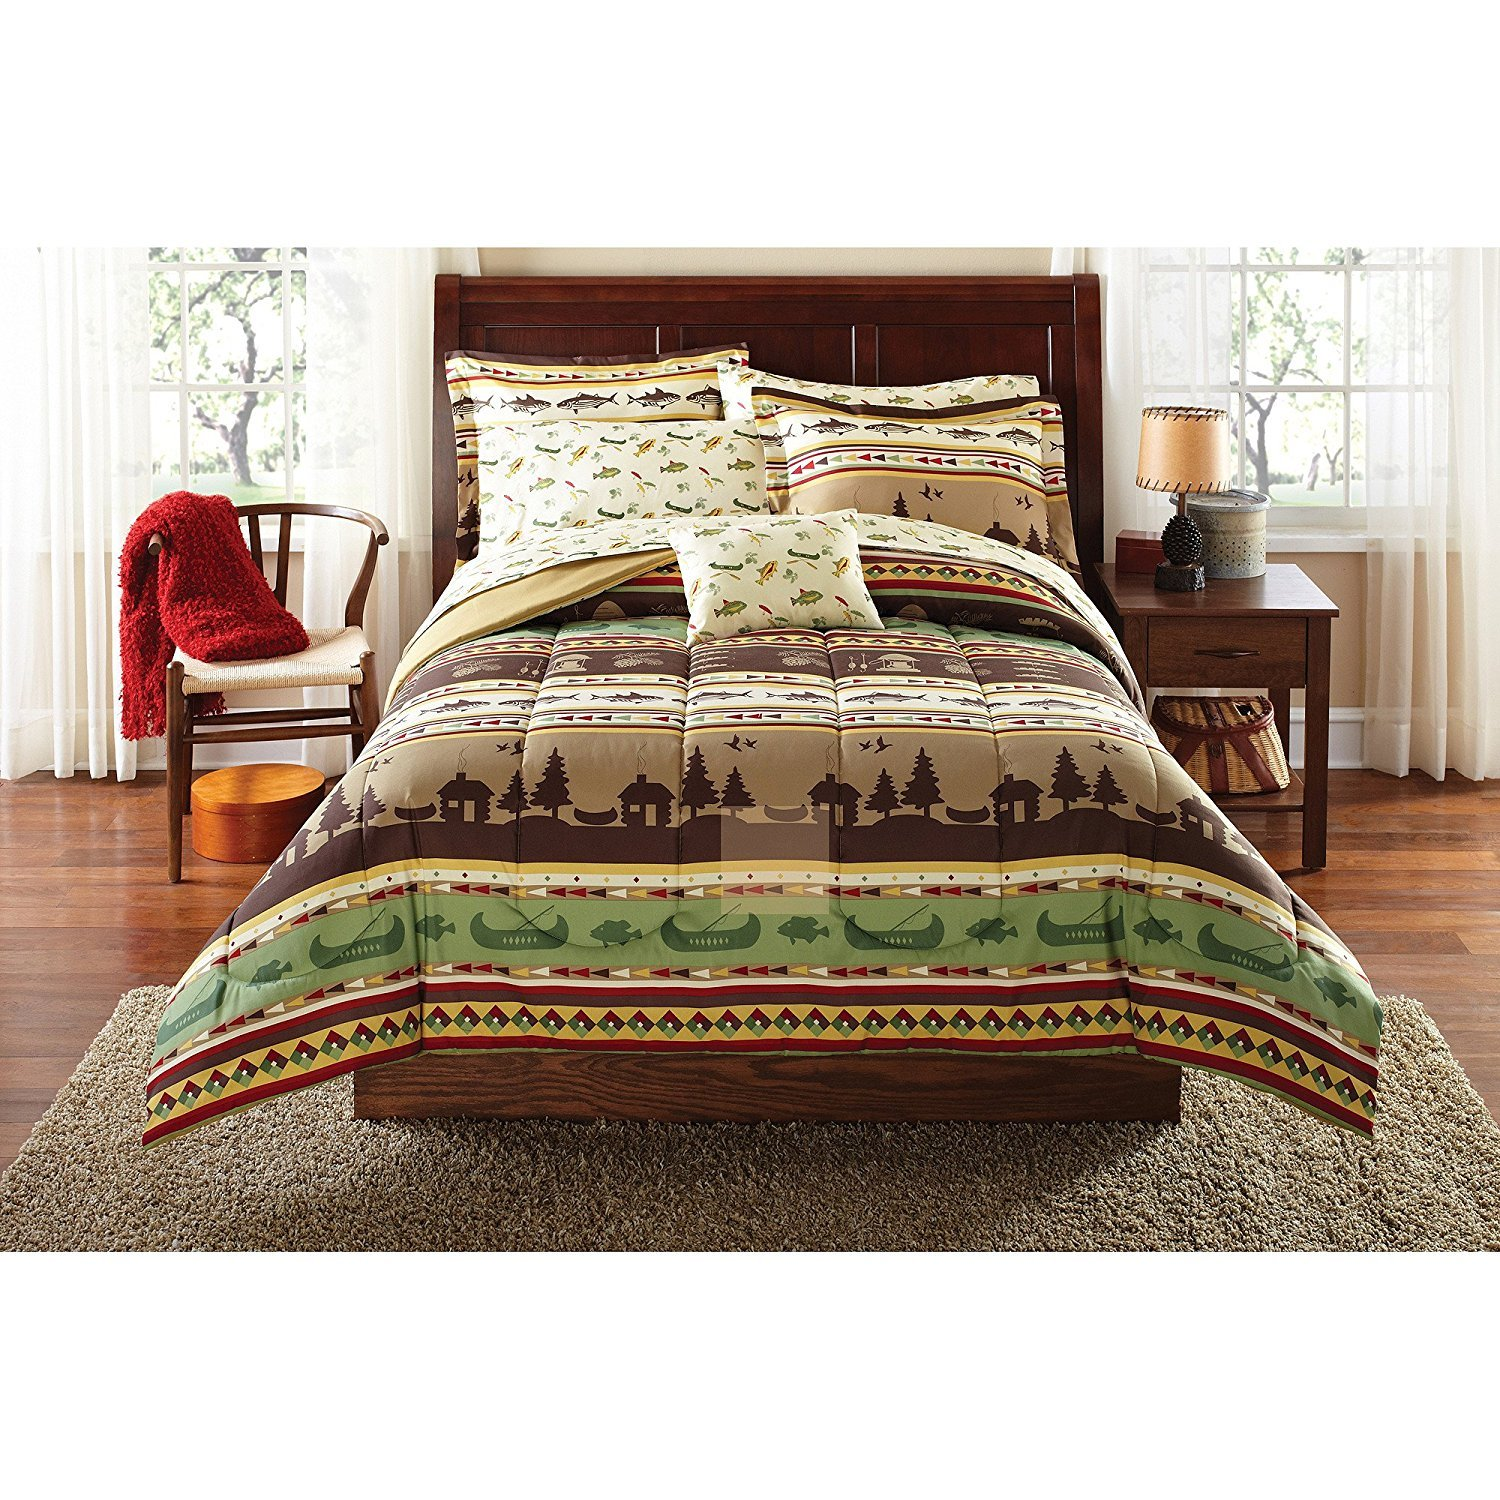 OSD 8pc Brown Green Fishing Stripes Theme Comforter Set Full Sized, Vibrant Colors, Sea Animals Bedding, Boats, Cabin Lodge Hunting Pattern, Geometric Patchwork Striped Inspired